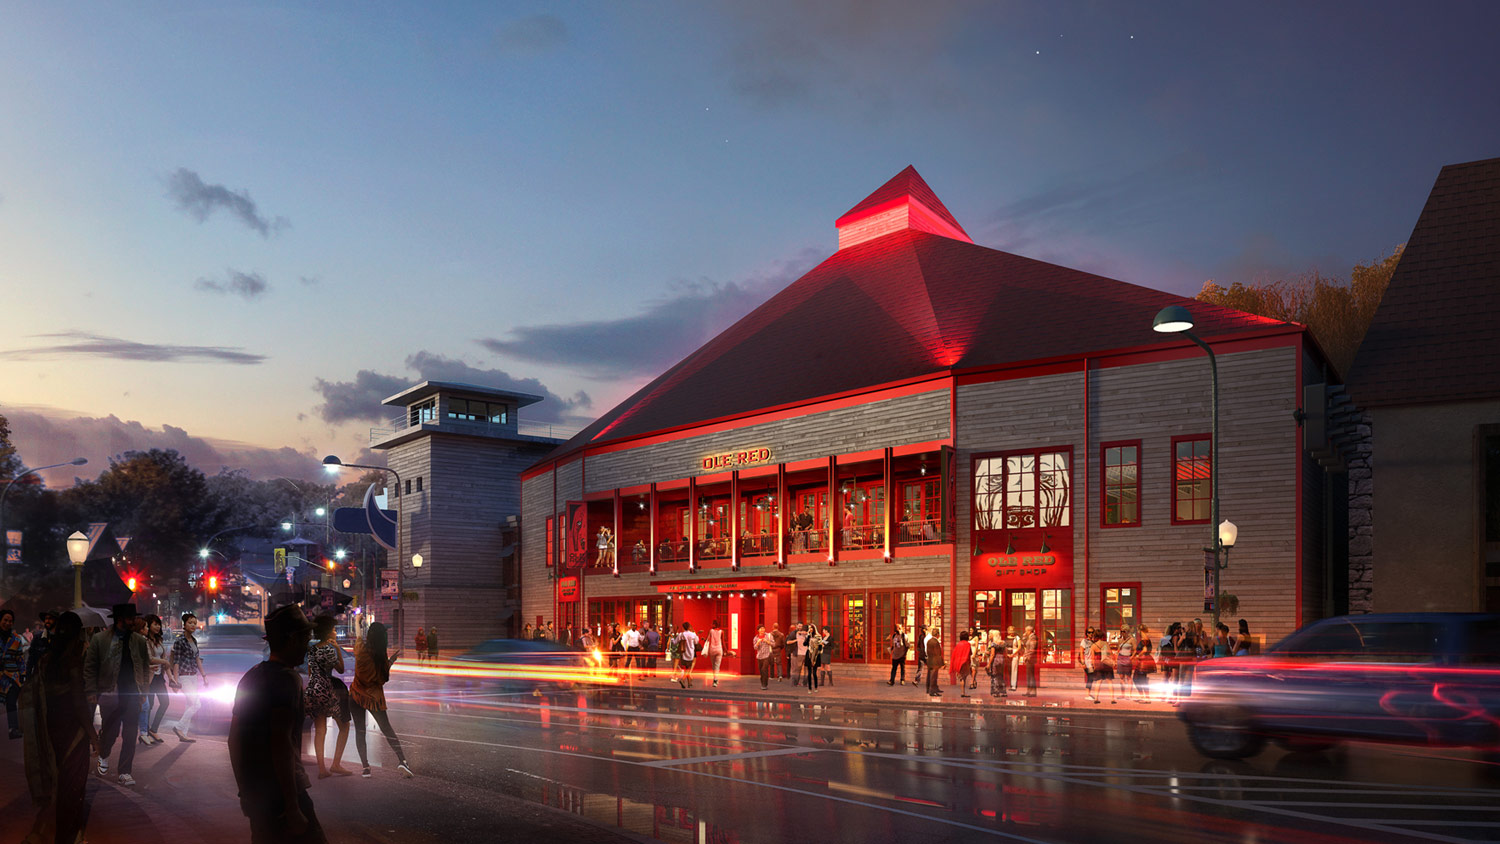 With A Planned Opening In March 2019 Ole Red Gatlinburg Will Be 9 Million Multi Level 16 000 Square Foot Entertainment Venue Two Story Bar And